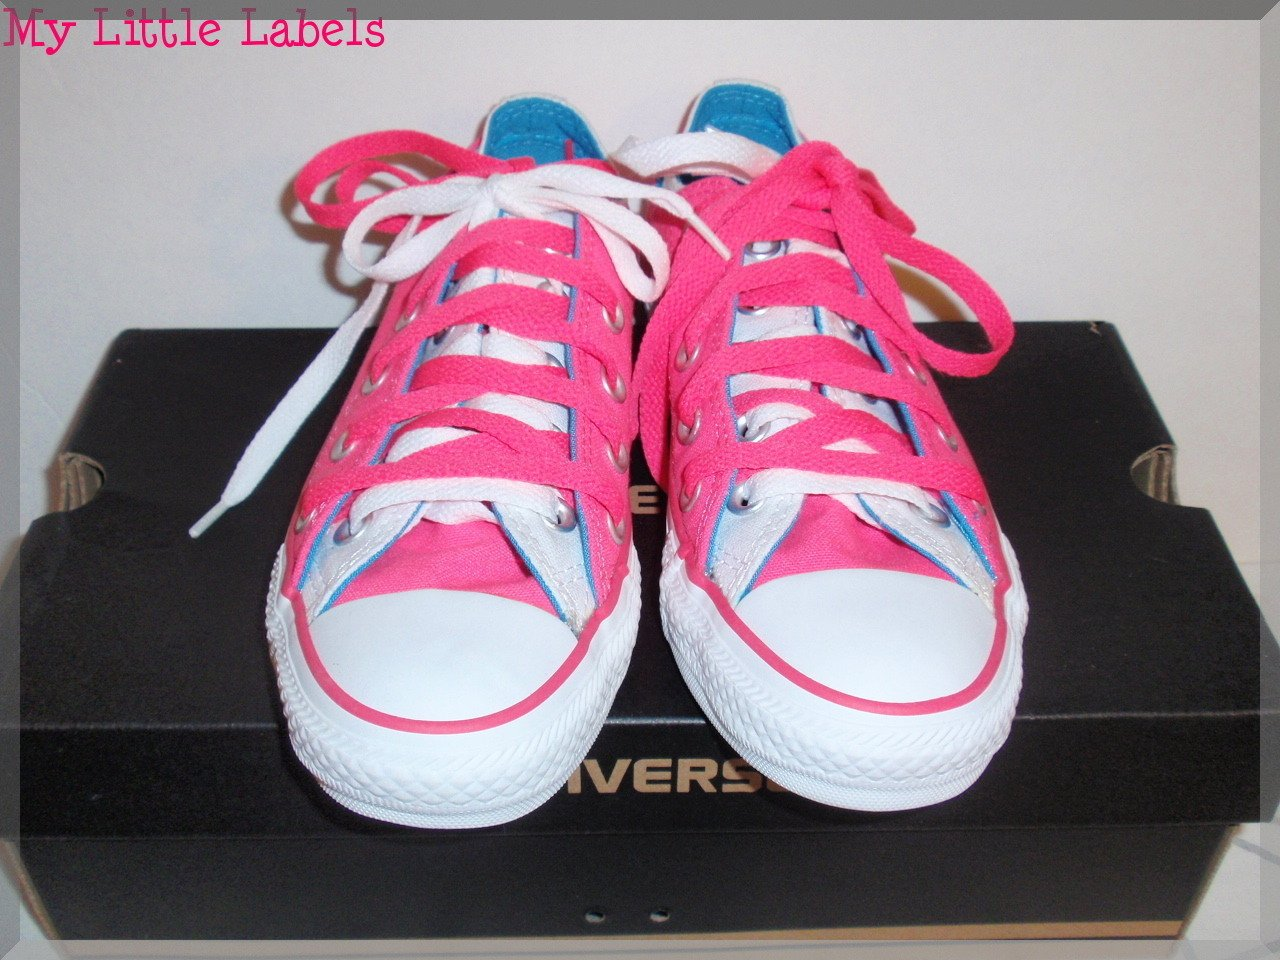 New Girls Converse All Star Double Tongue Pink/Light Blue Sneakers Size 3Y